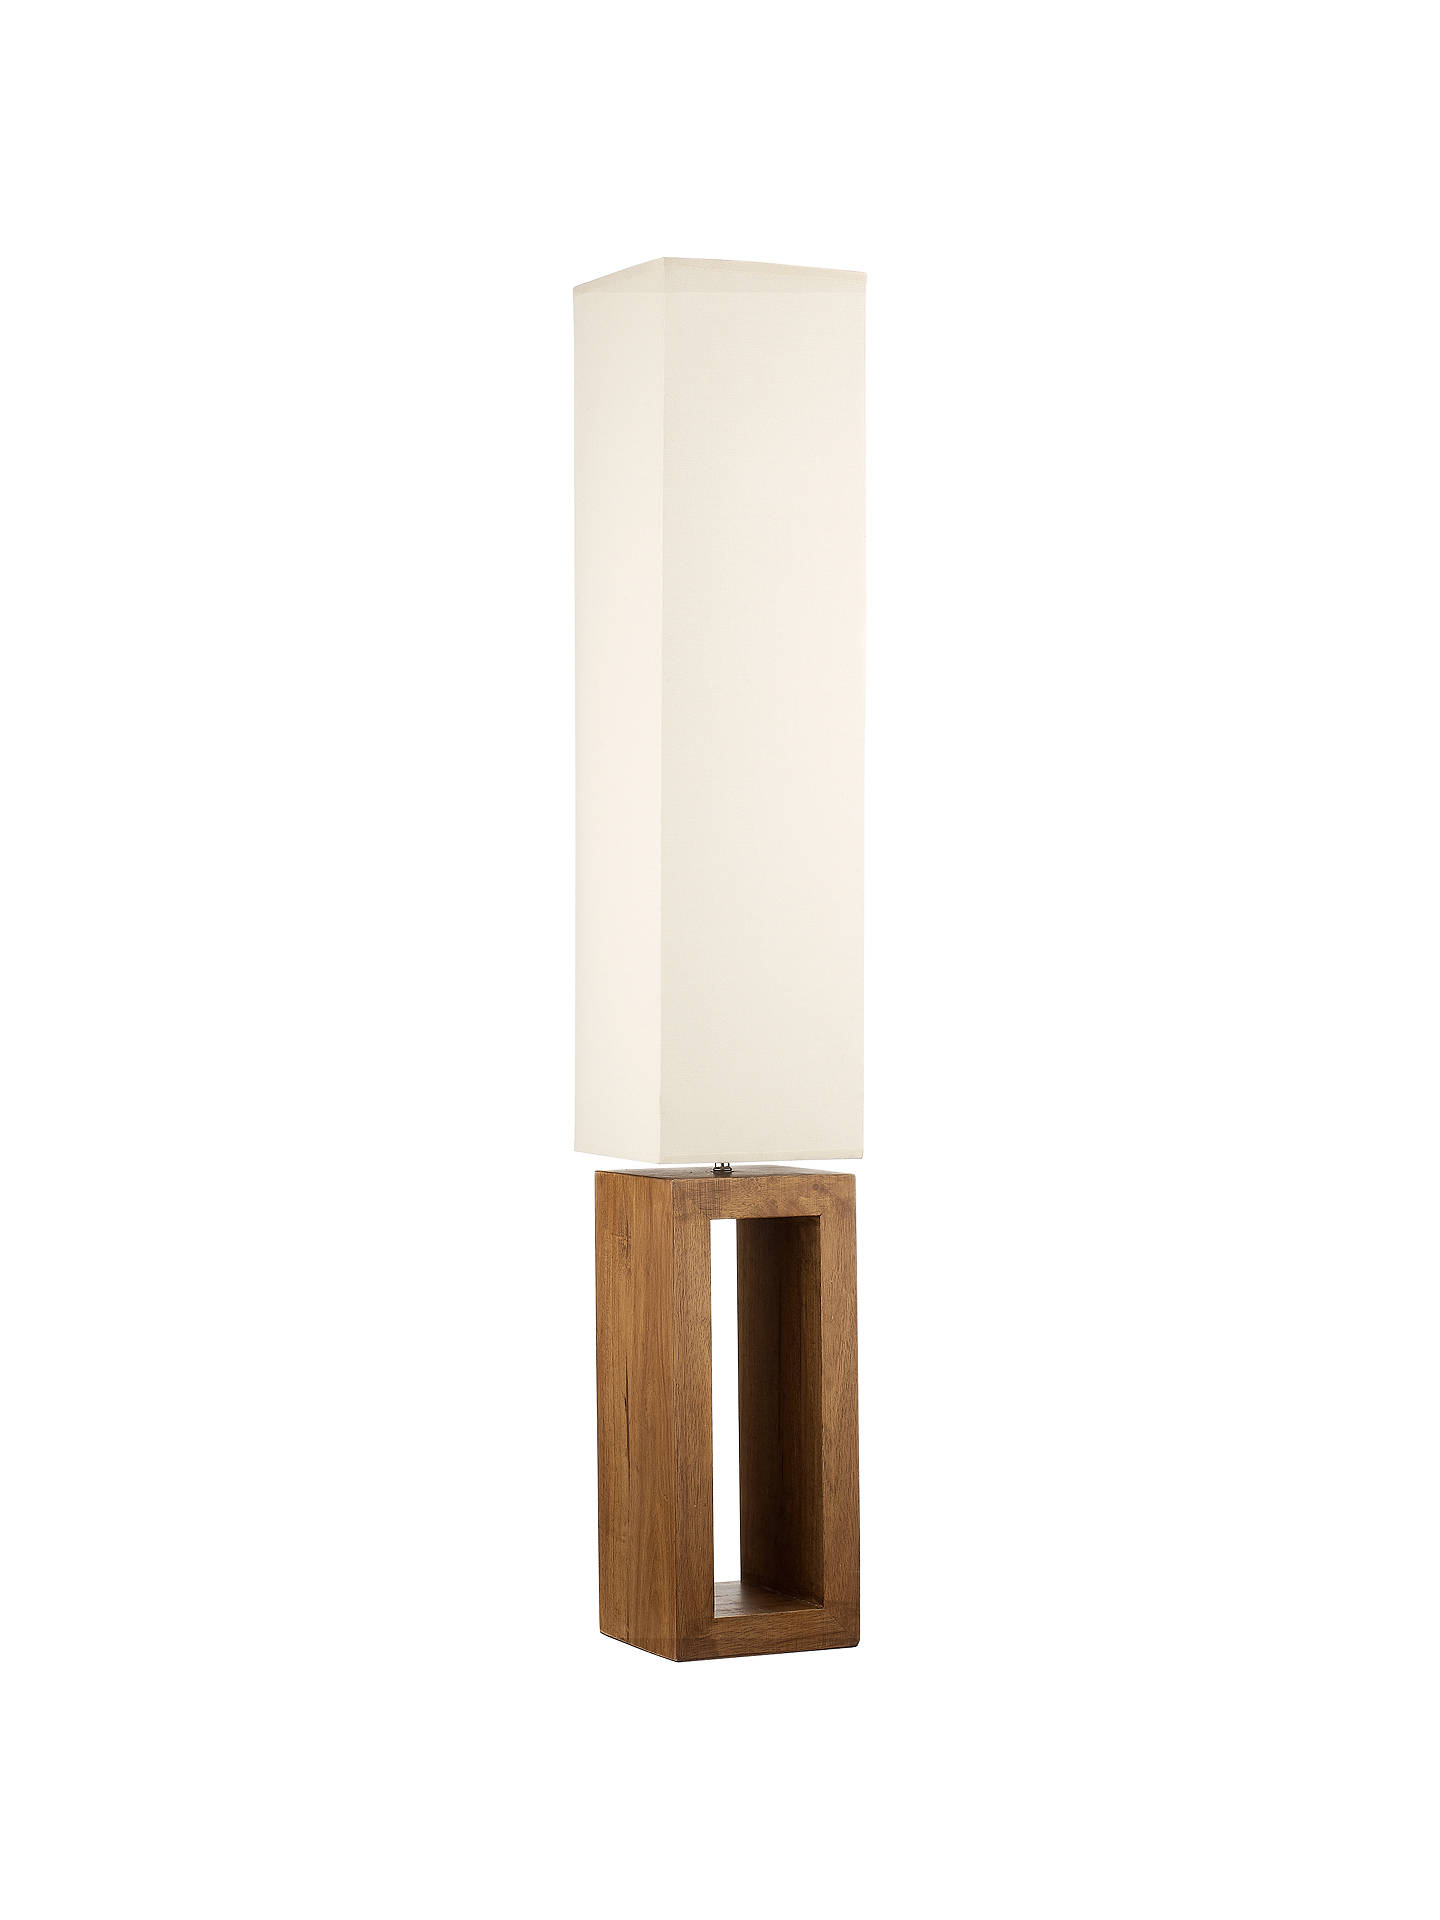 BuyJohn Lewis & Partners Echo Wood Floor Lamp Online at johnlewis.com